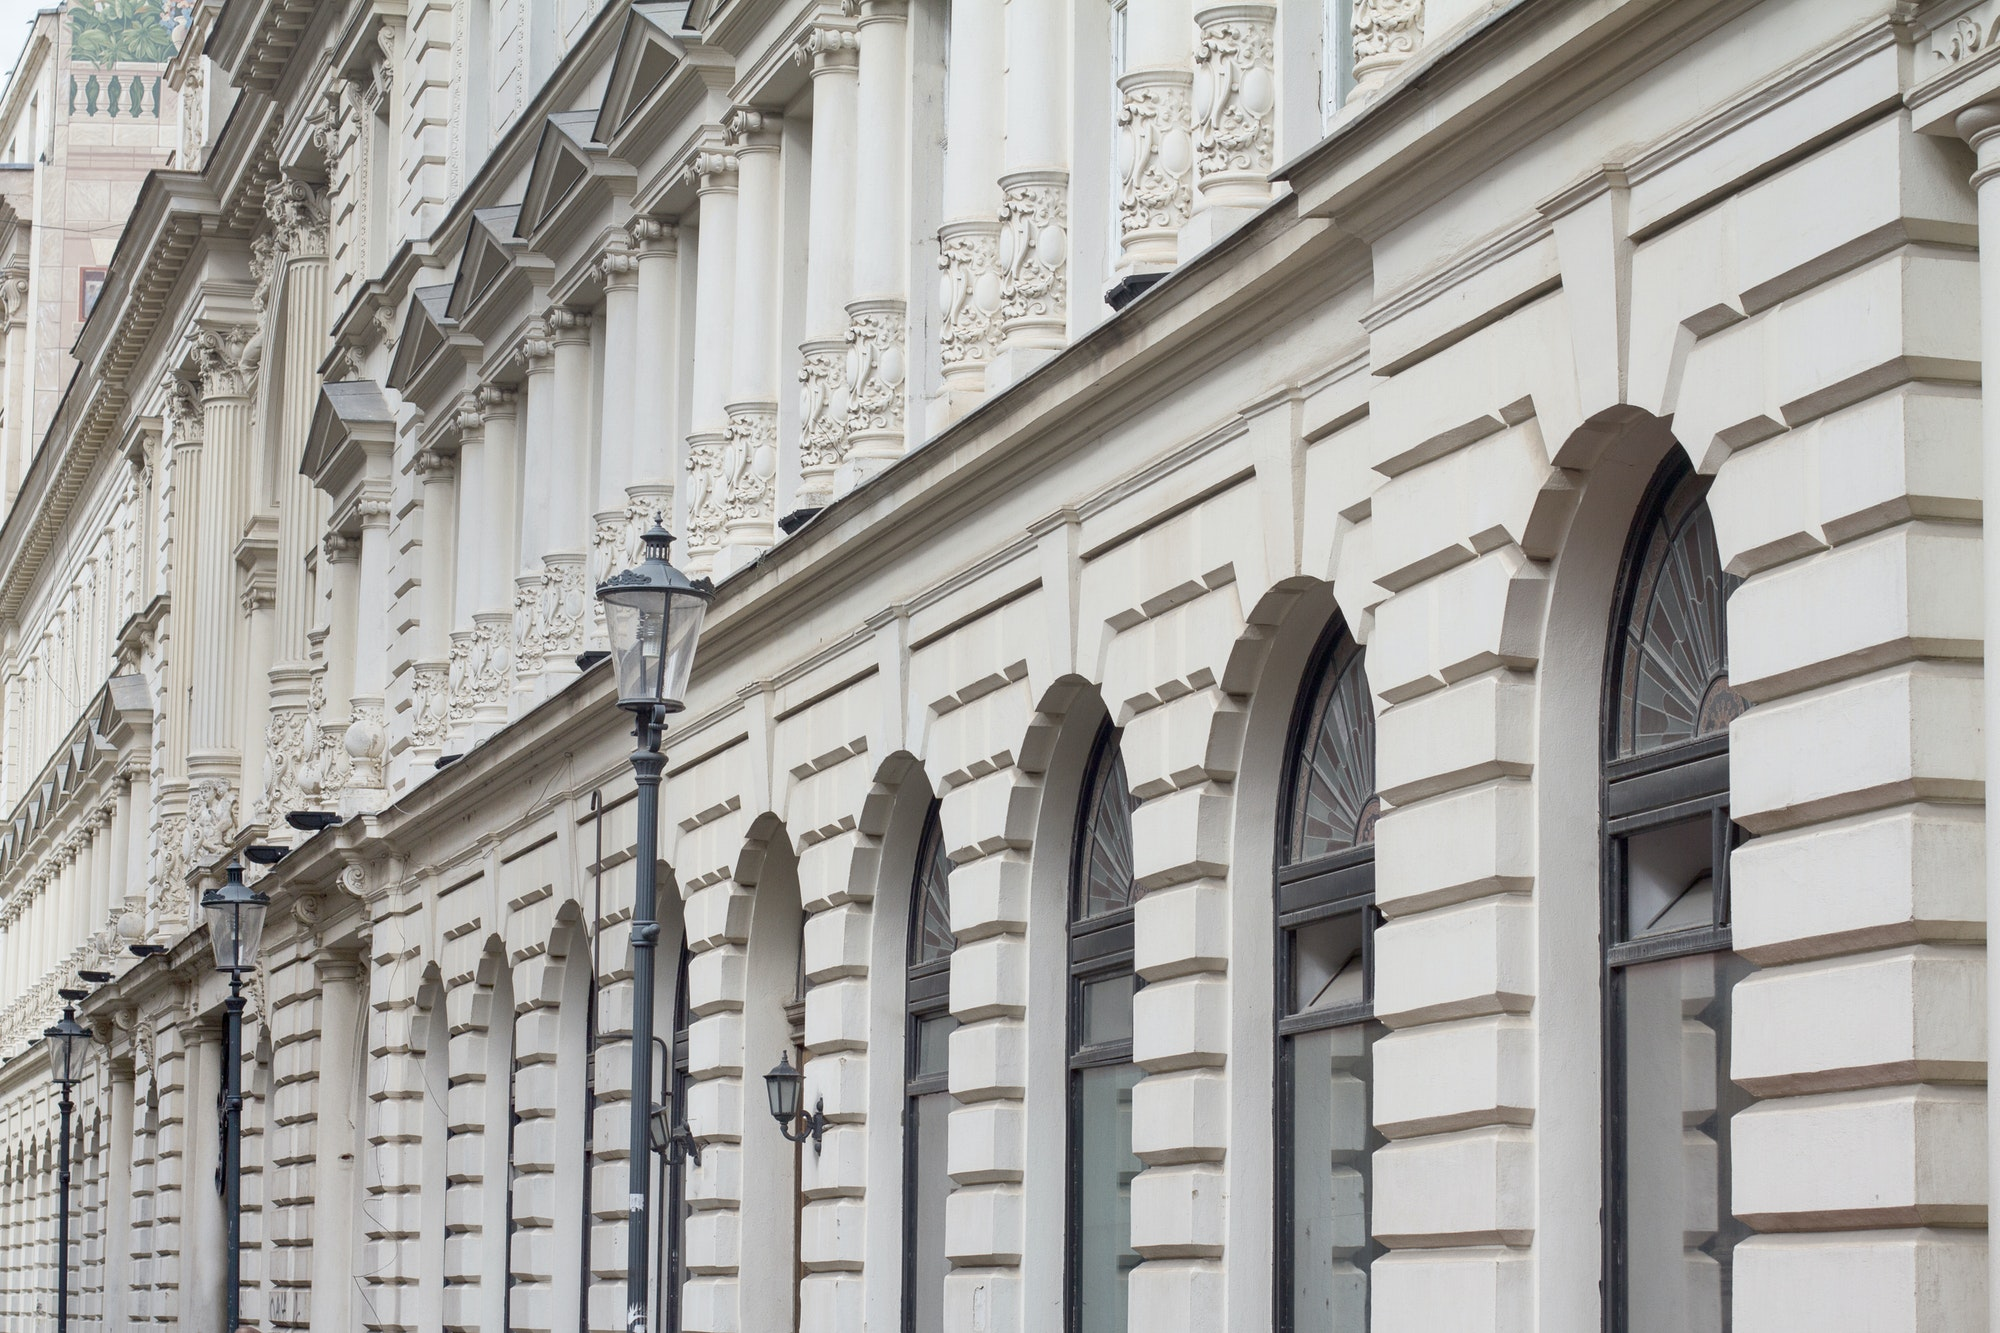 White, classical building architecture with windows and street l